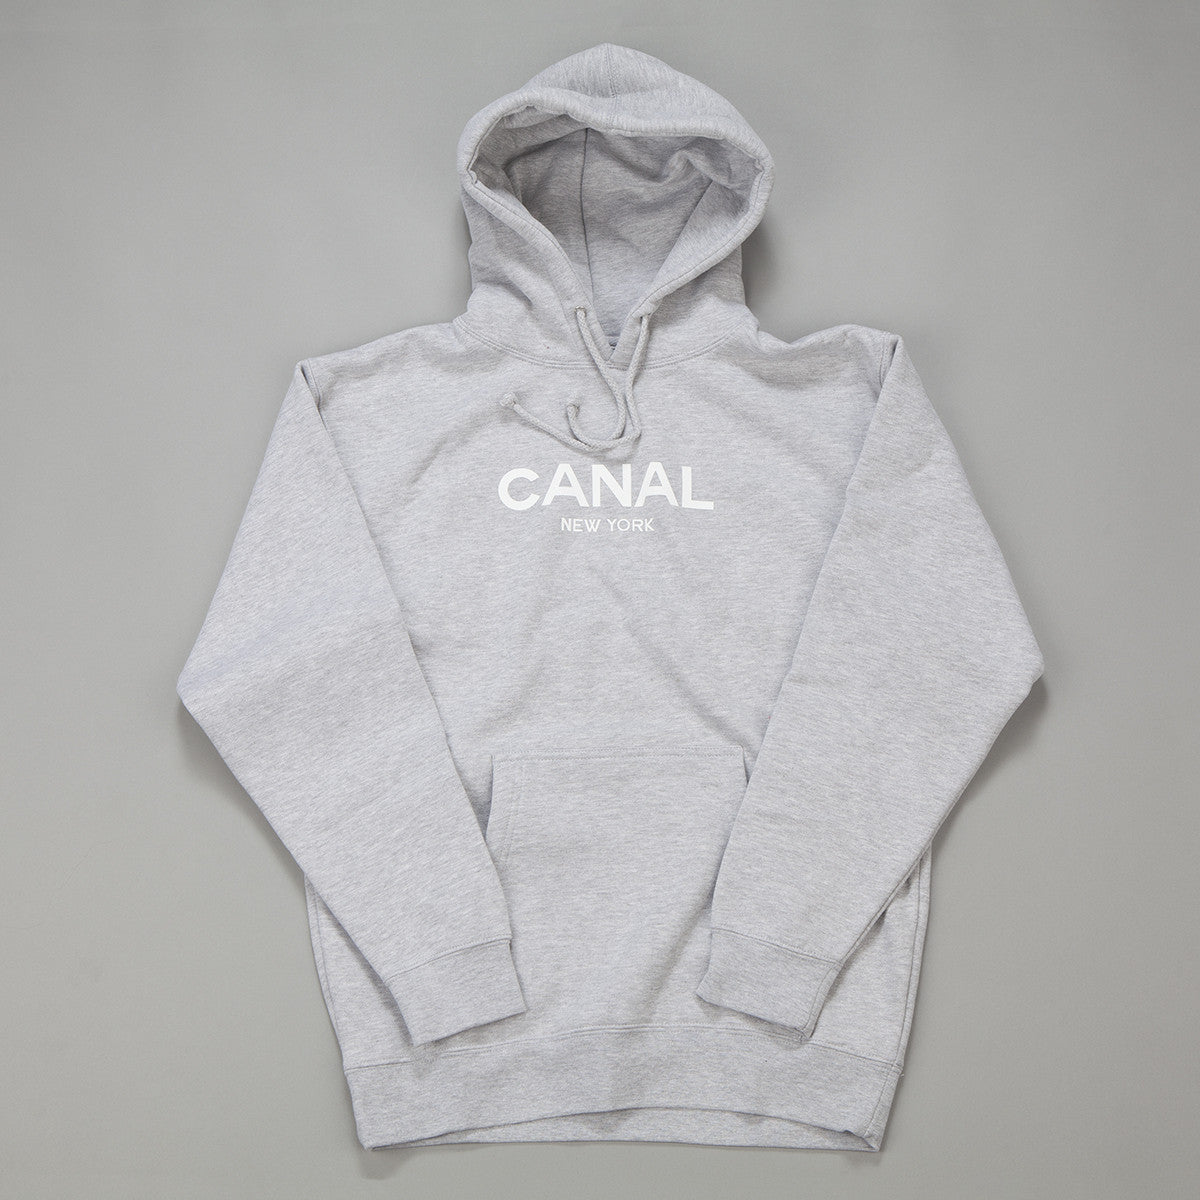 Canal New York Hooded Sweatshirt - Grey